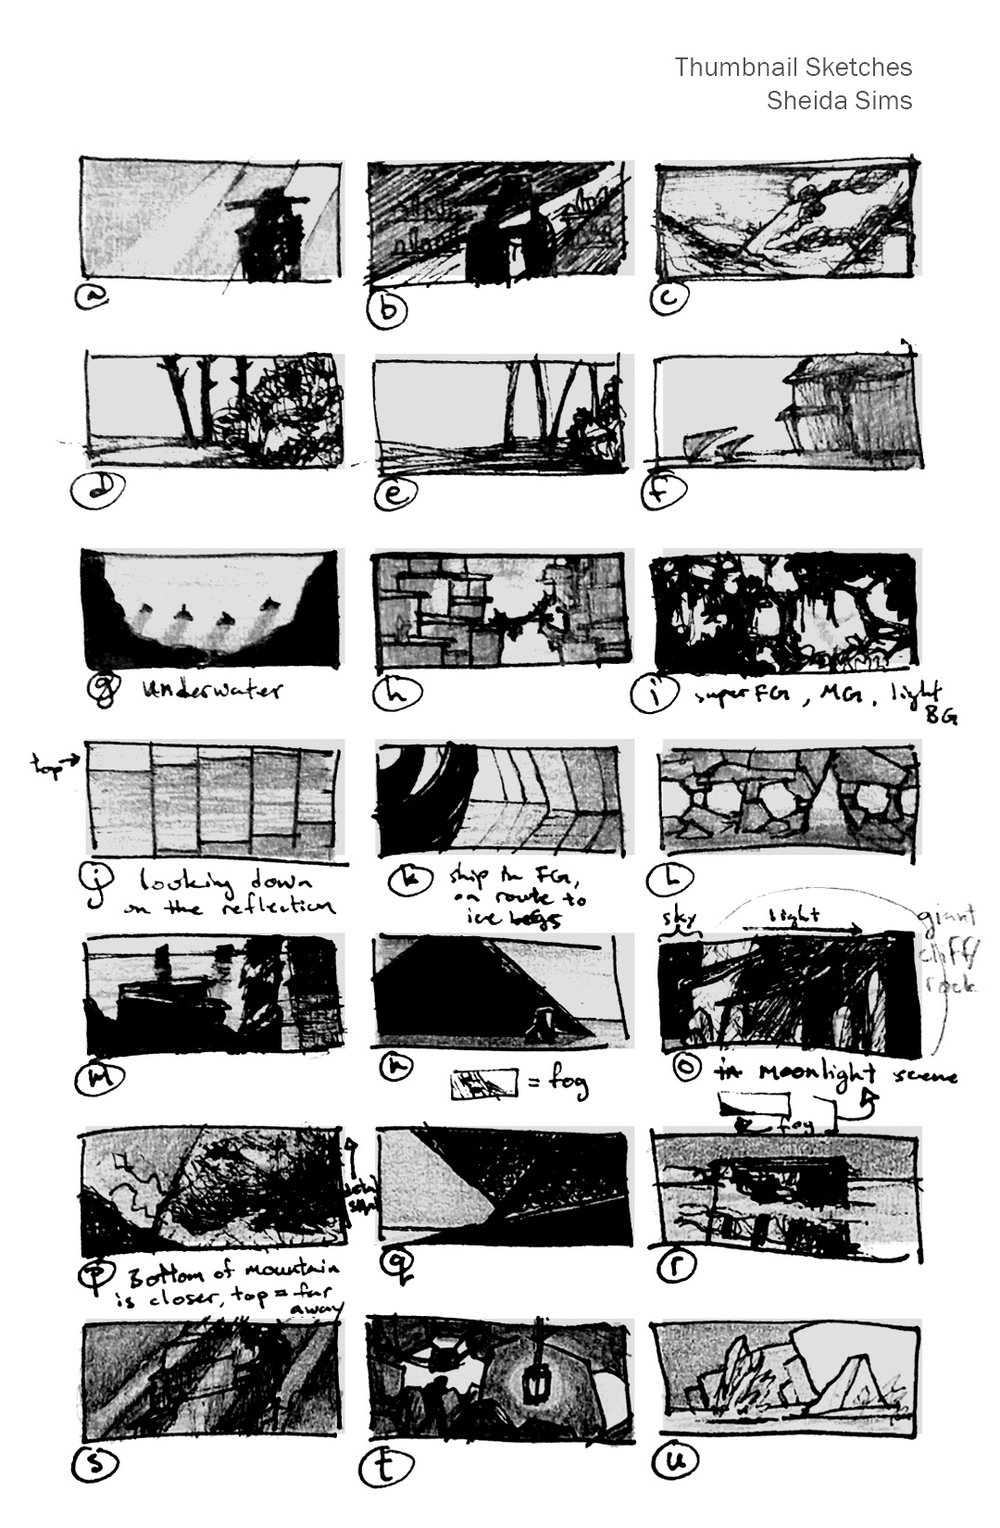 ThumbnailSketches_01_07_2016_02.jpg